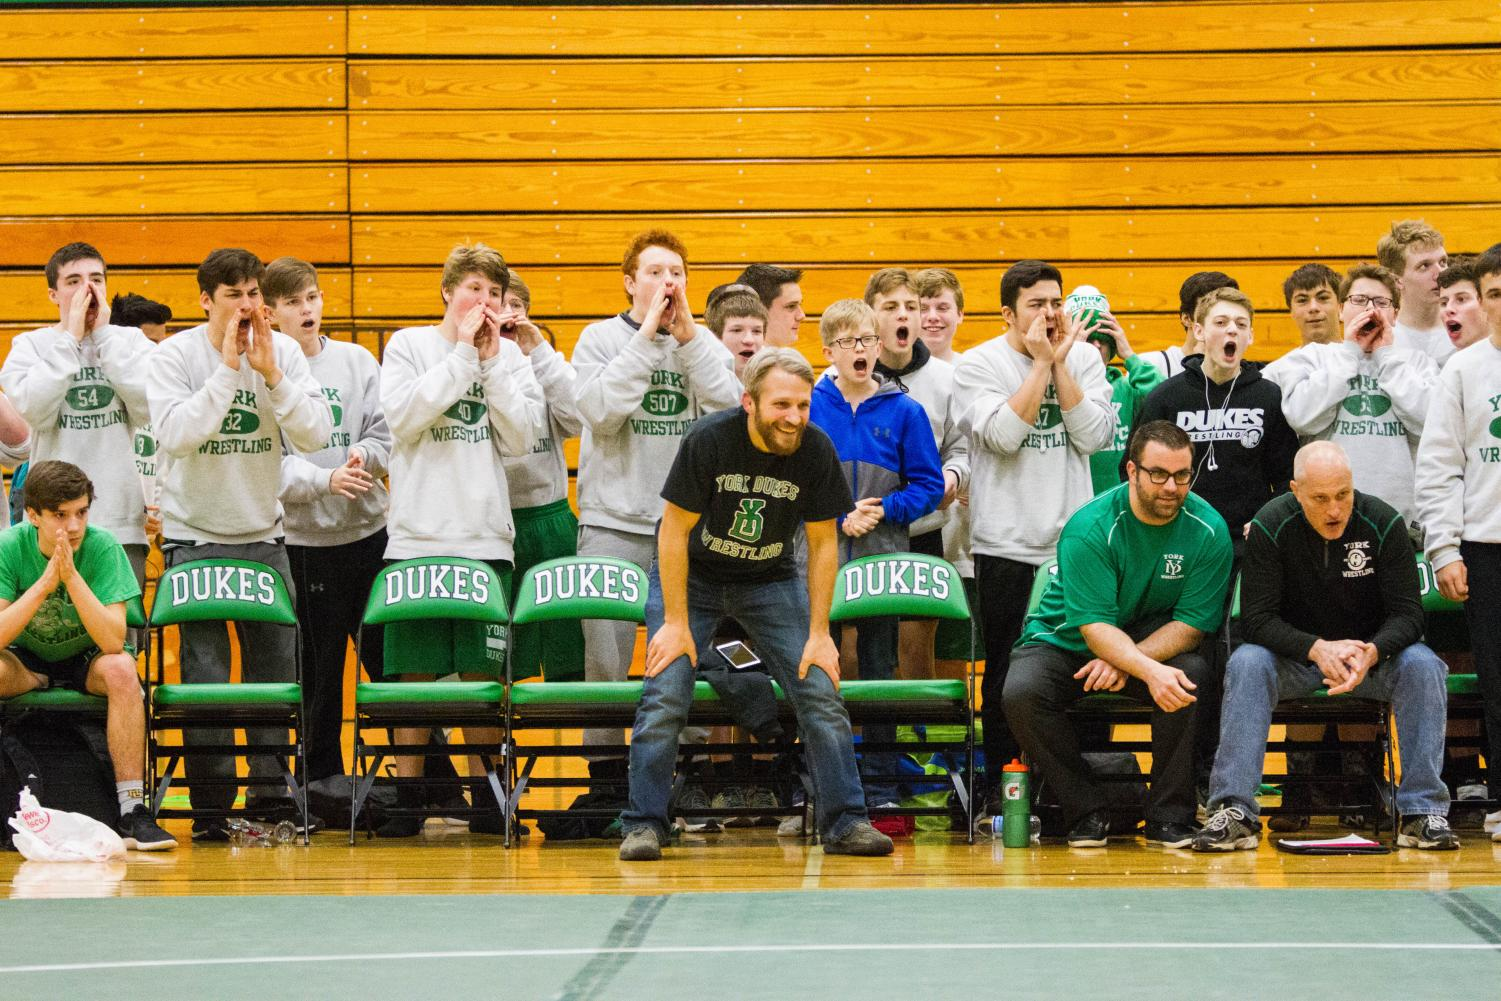 All levels of dukes wrestling gather to cheer on their final wrestler for the night.